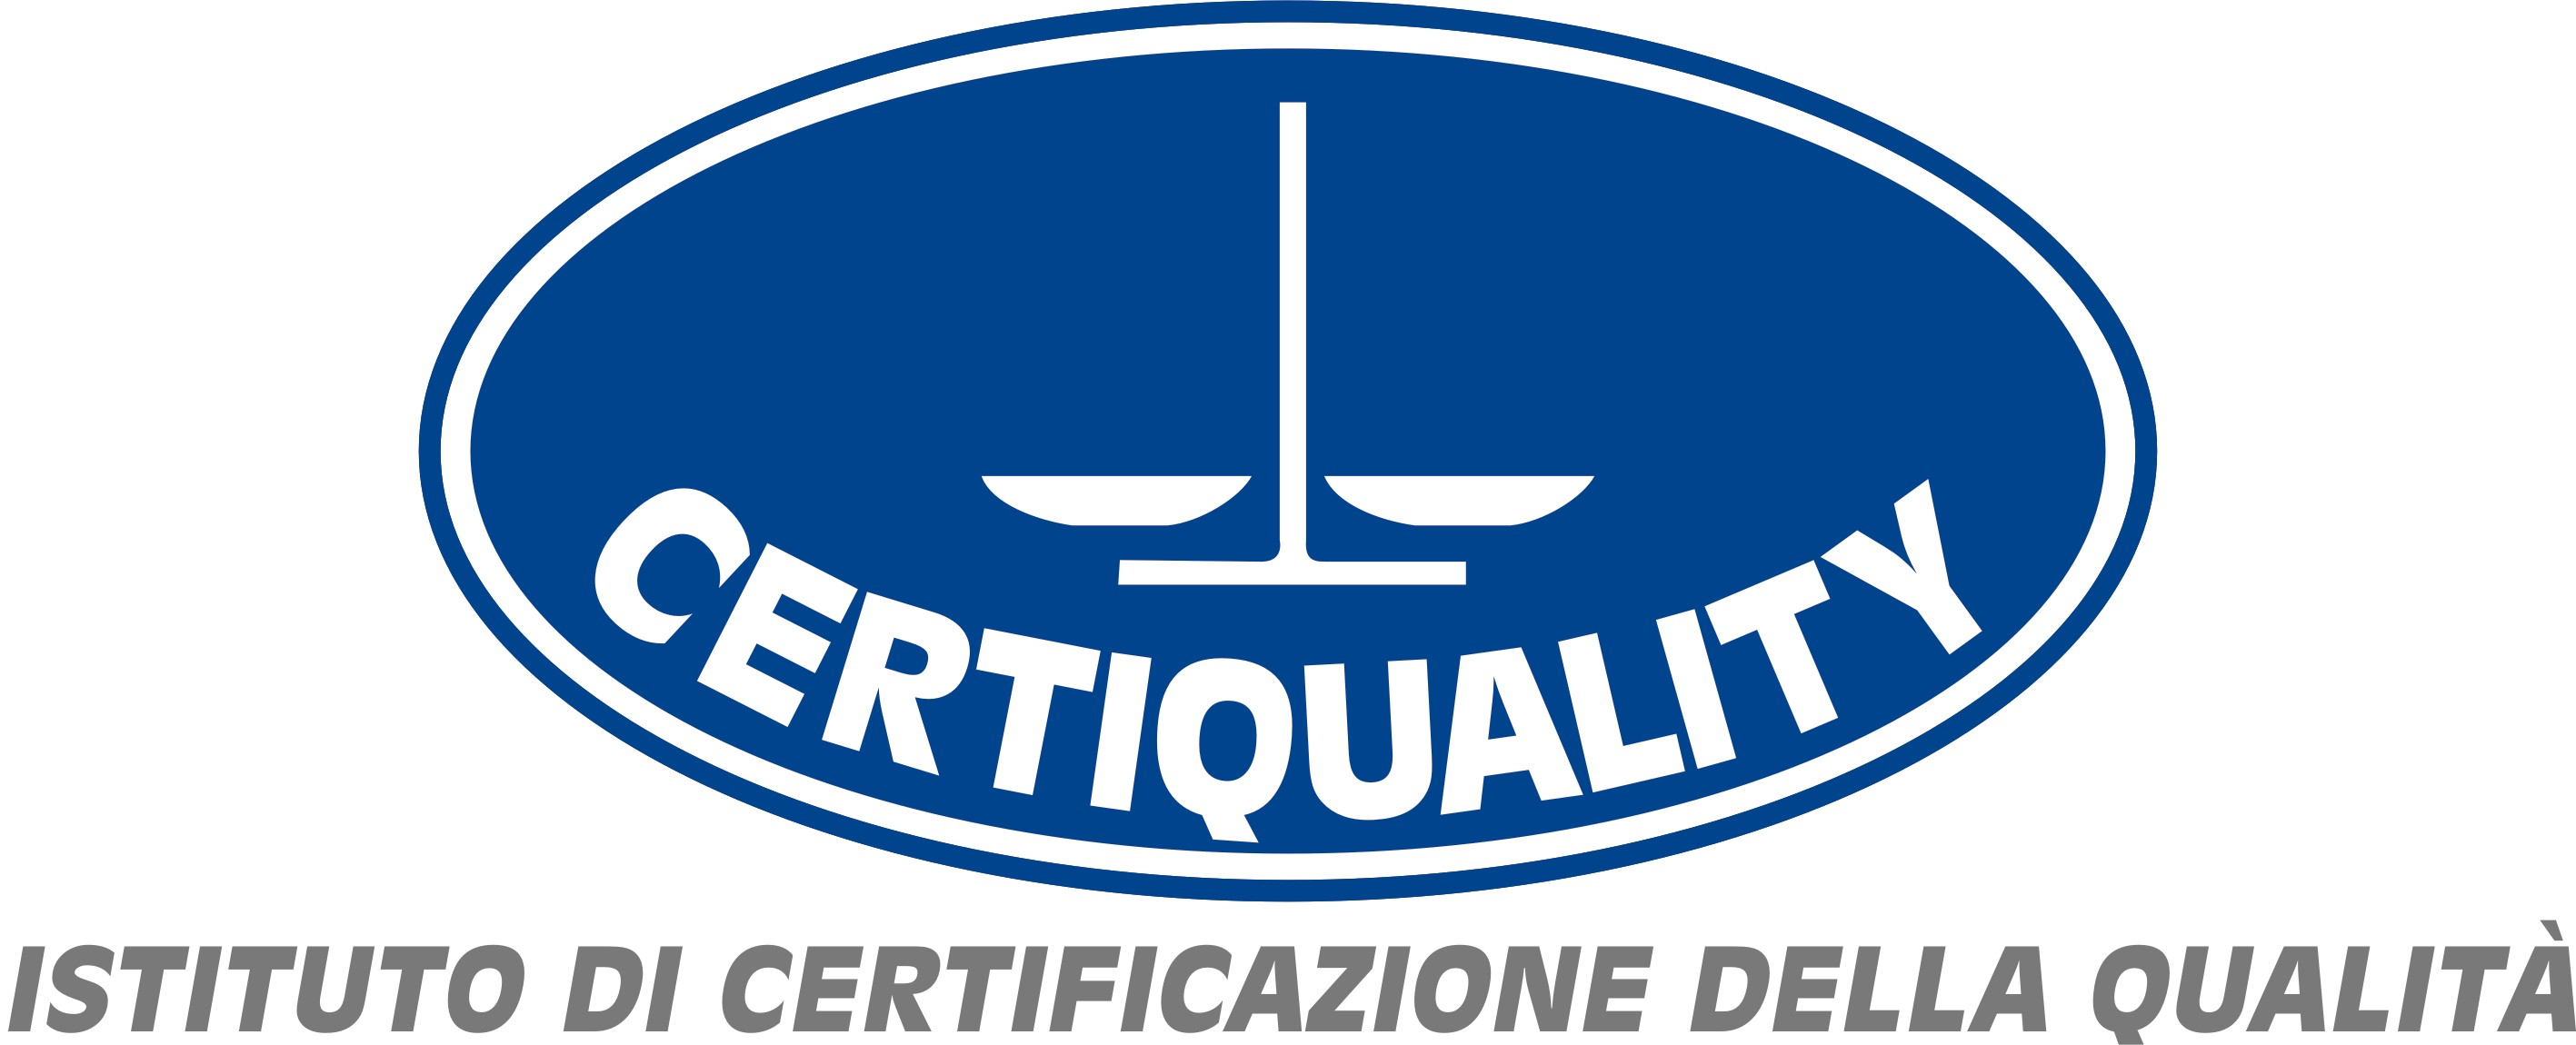 Certiquality per media for health